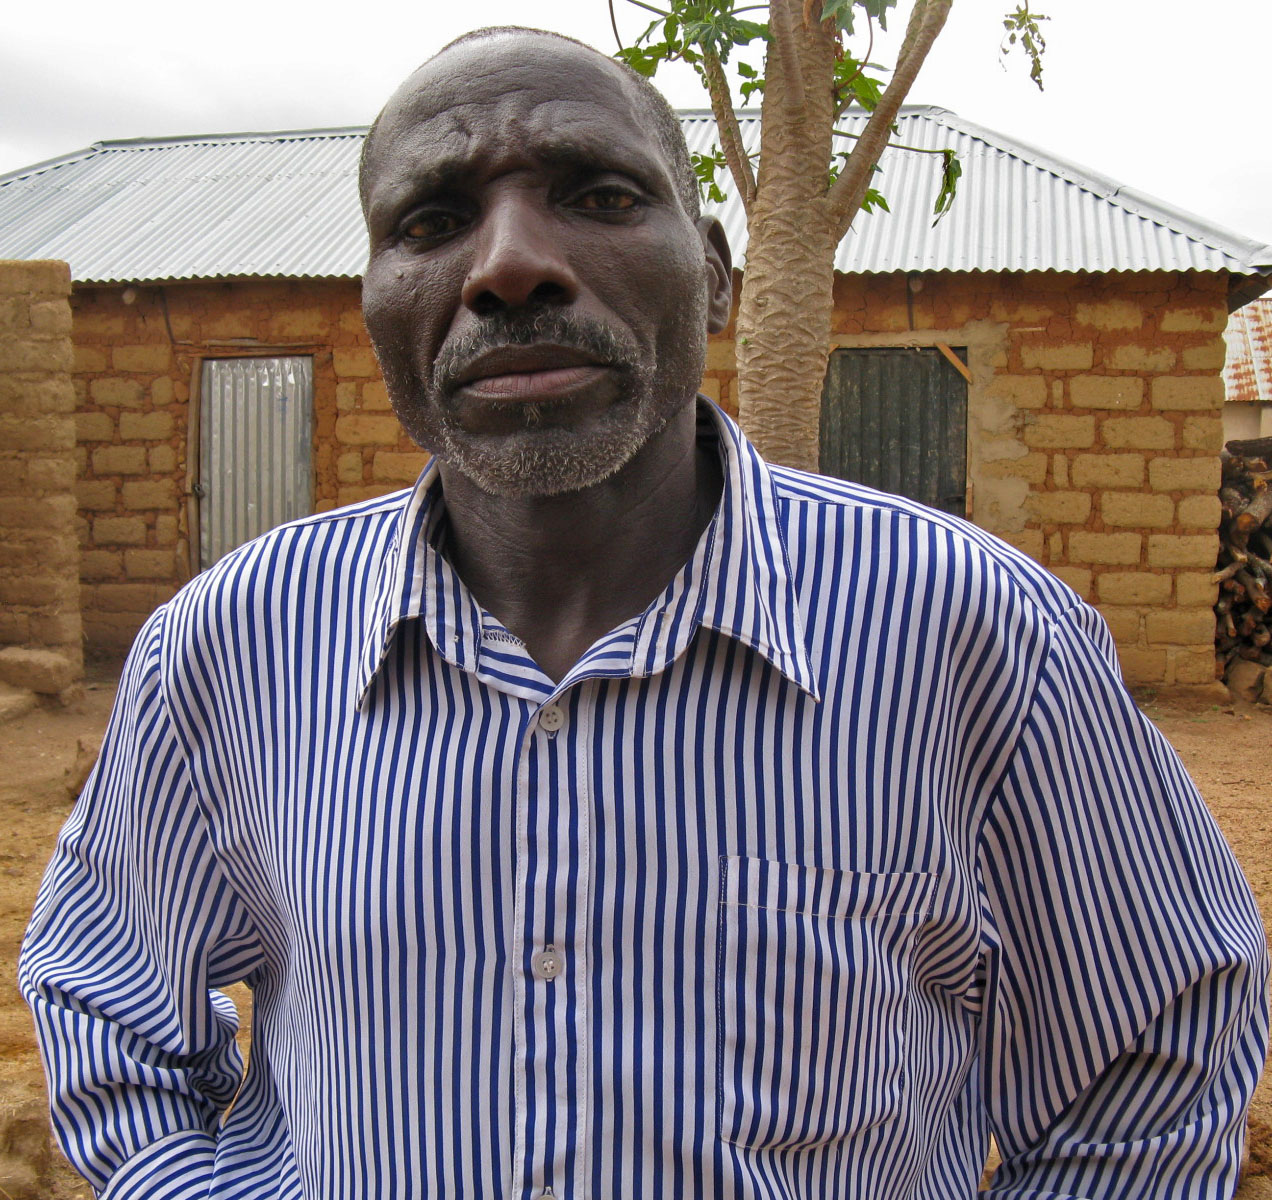 Farmer Hosea Mashaf rushed from a neighboring village to aid Christians under attack.  (Morning Star News photo)